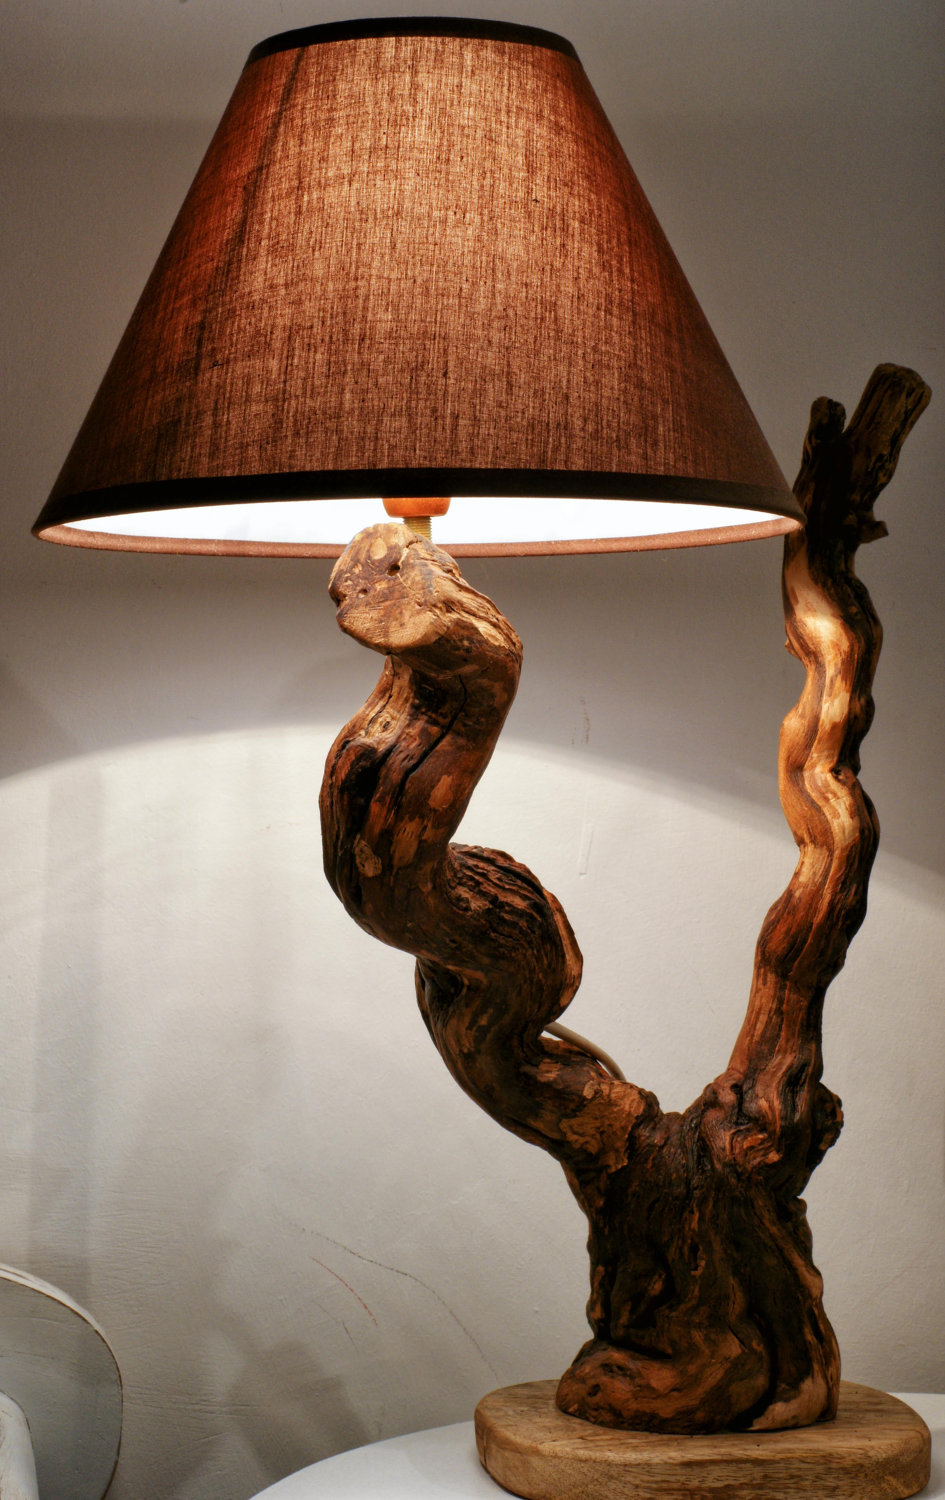 il_fullxfull.342933877 Do You Like To Have A handmade Wooden Lamp?